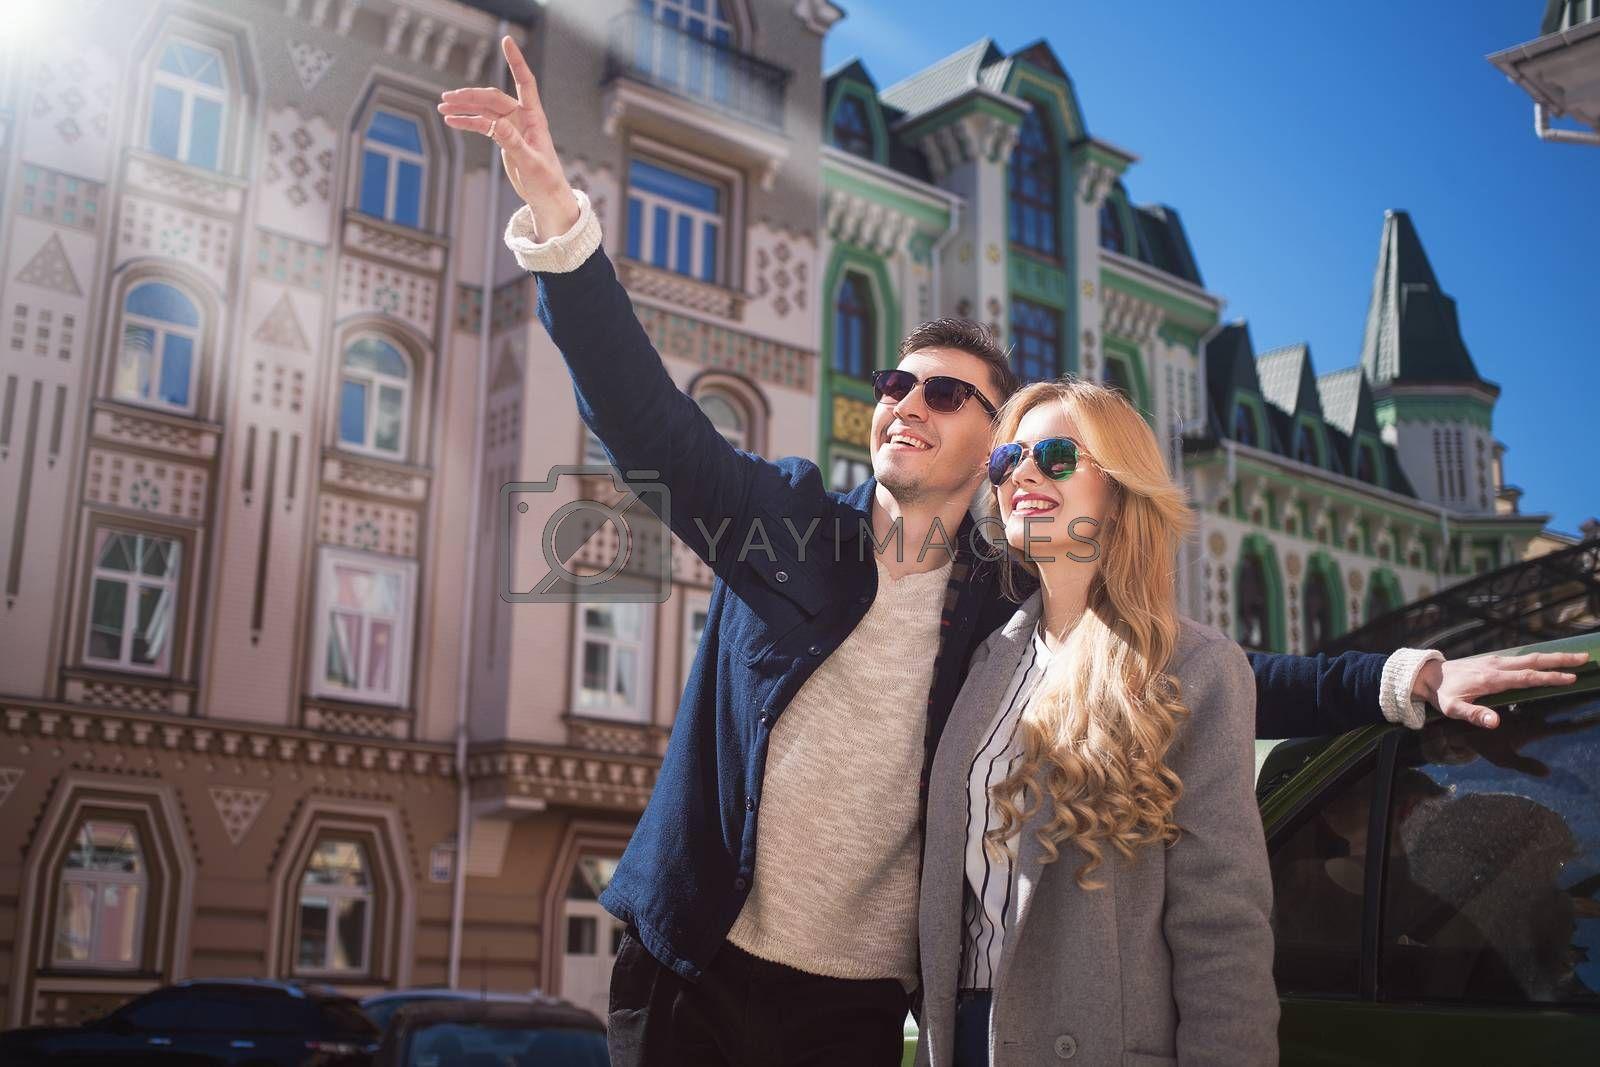 Couple walks in the beautiful city,bright day